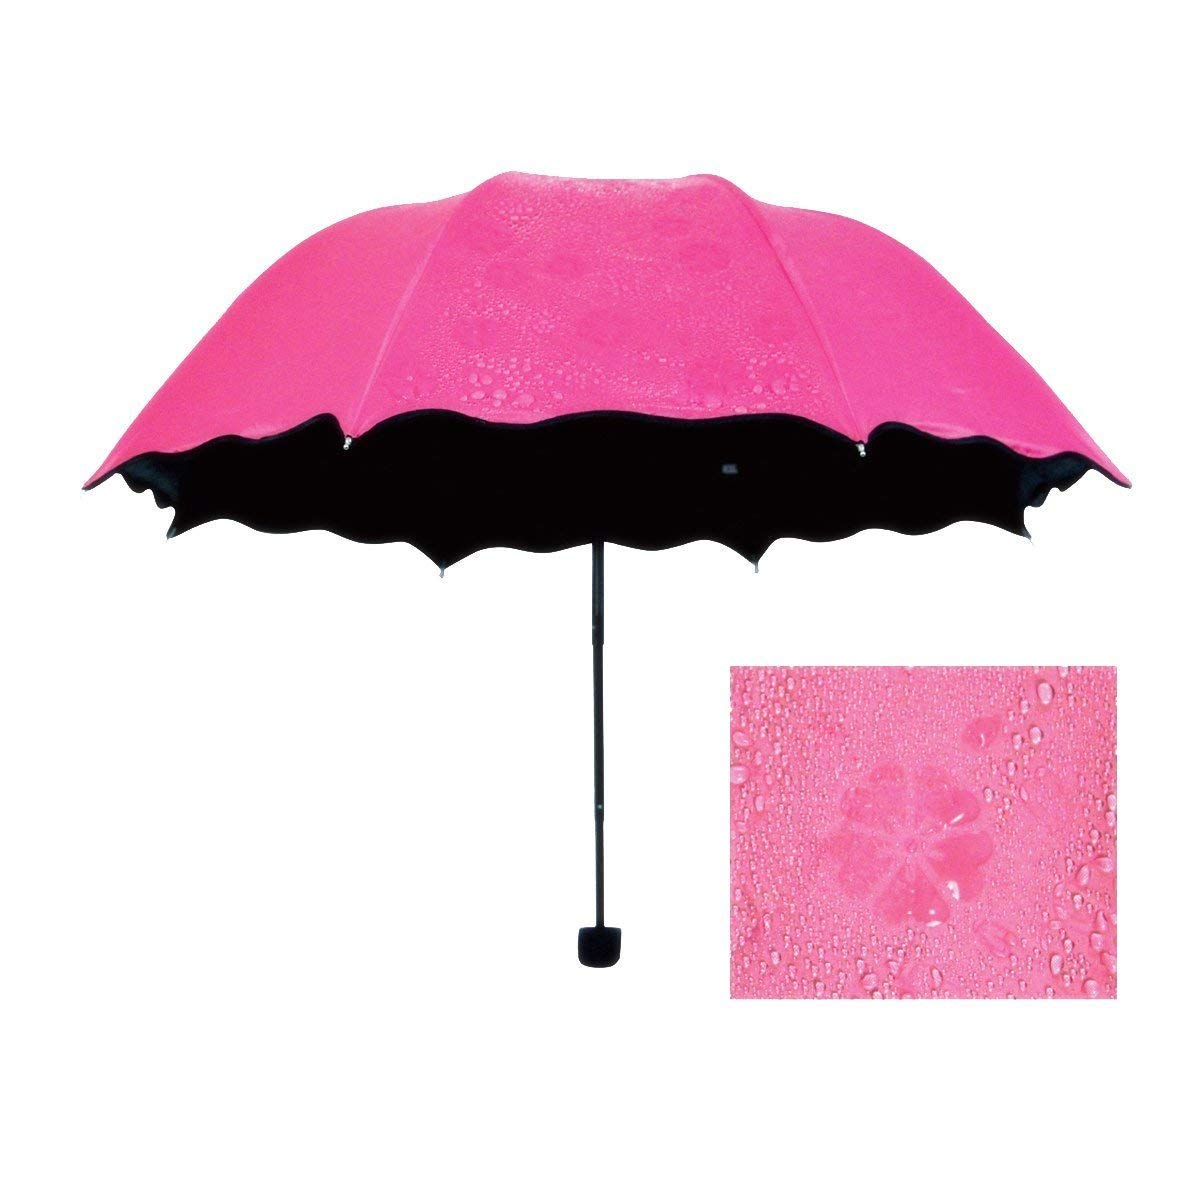 Triple Folding Mini Blossom Magic Umbrella with Magic Floral Design Appears on Umbrella During Rain for Girls and Women (Multi Color Pack of 1) - gadgetbucketindia